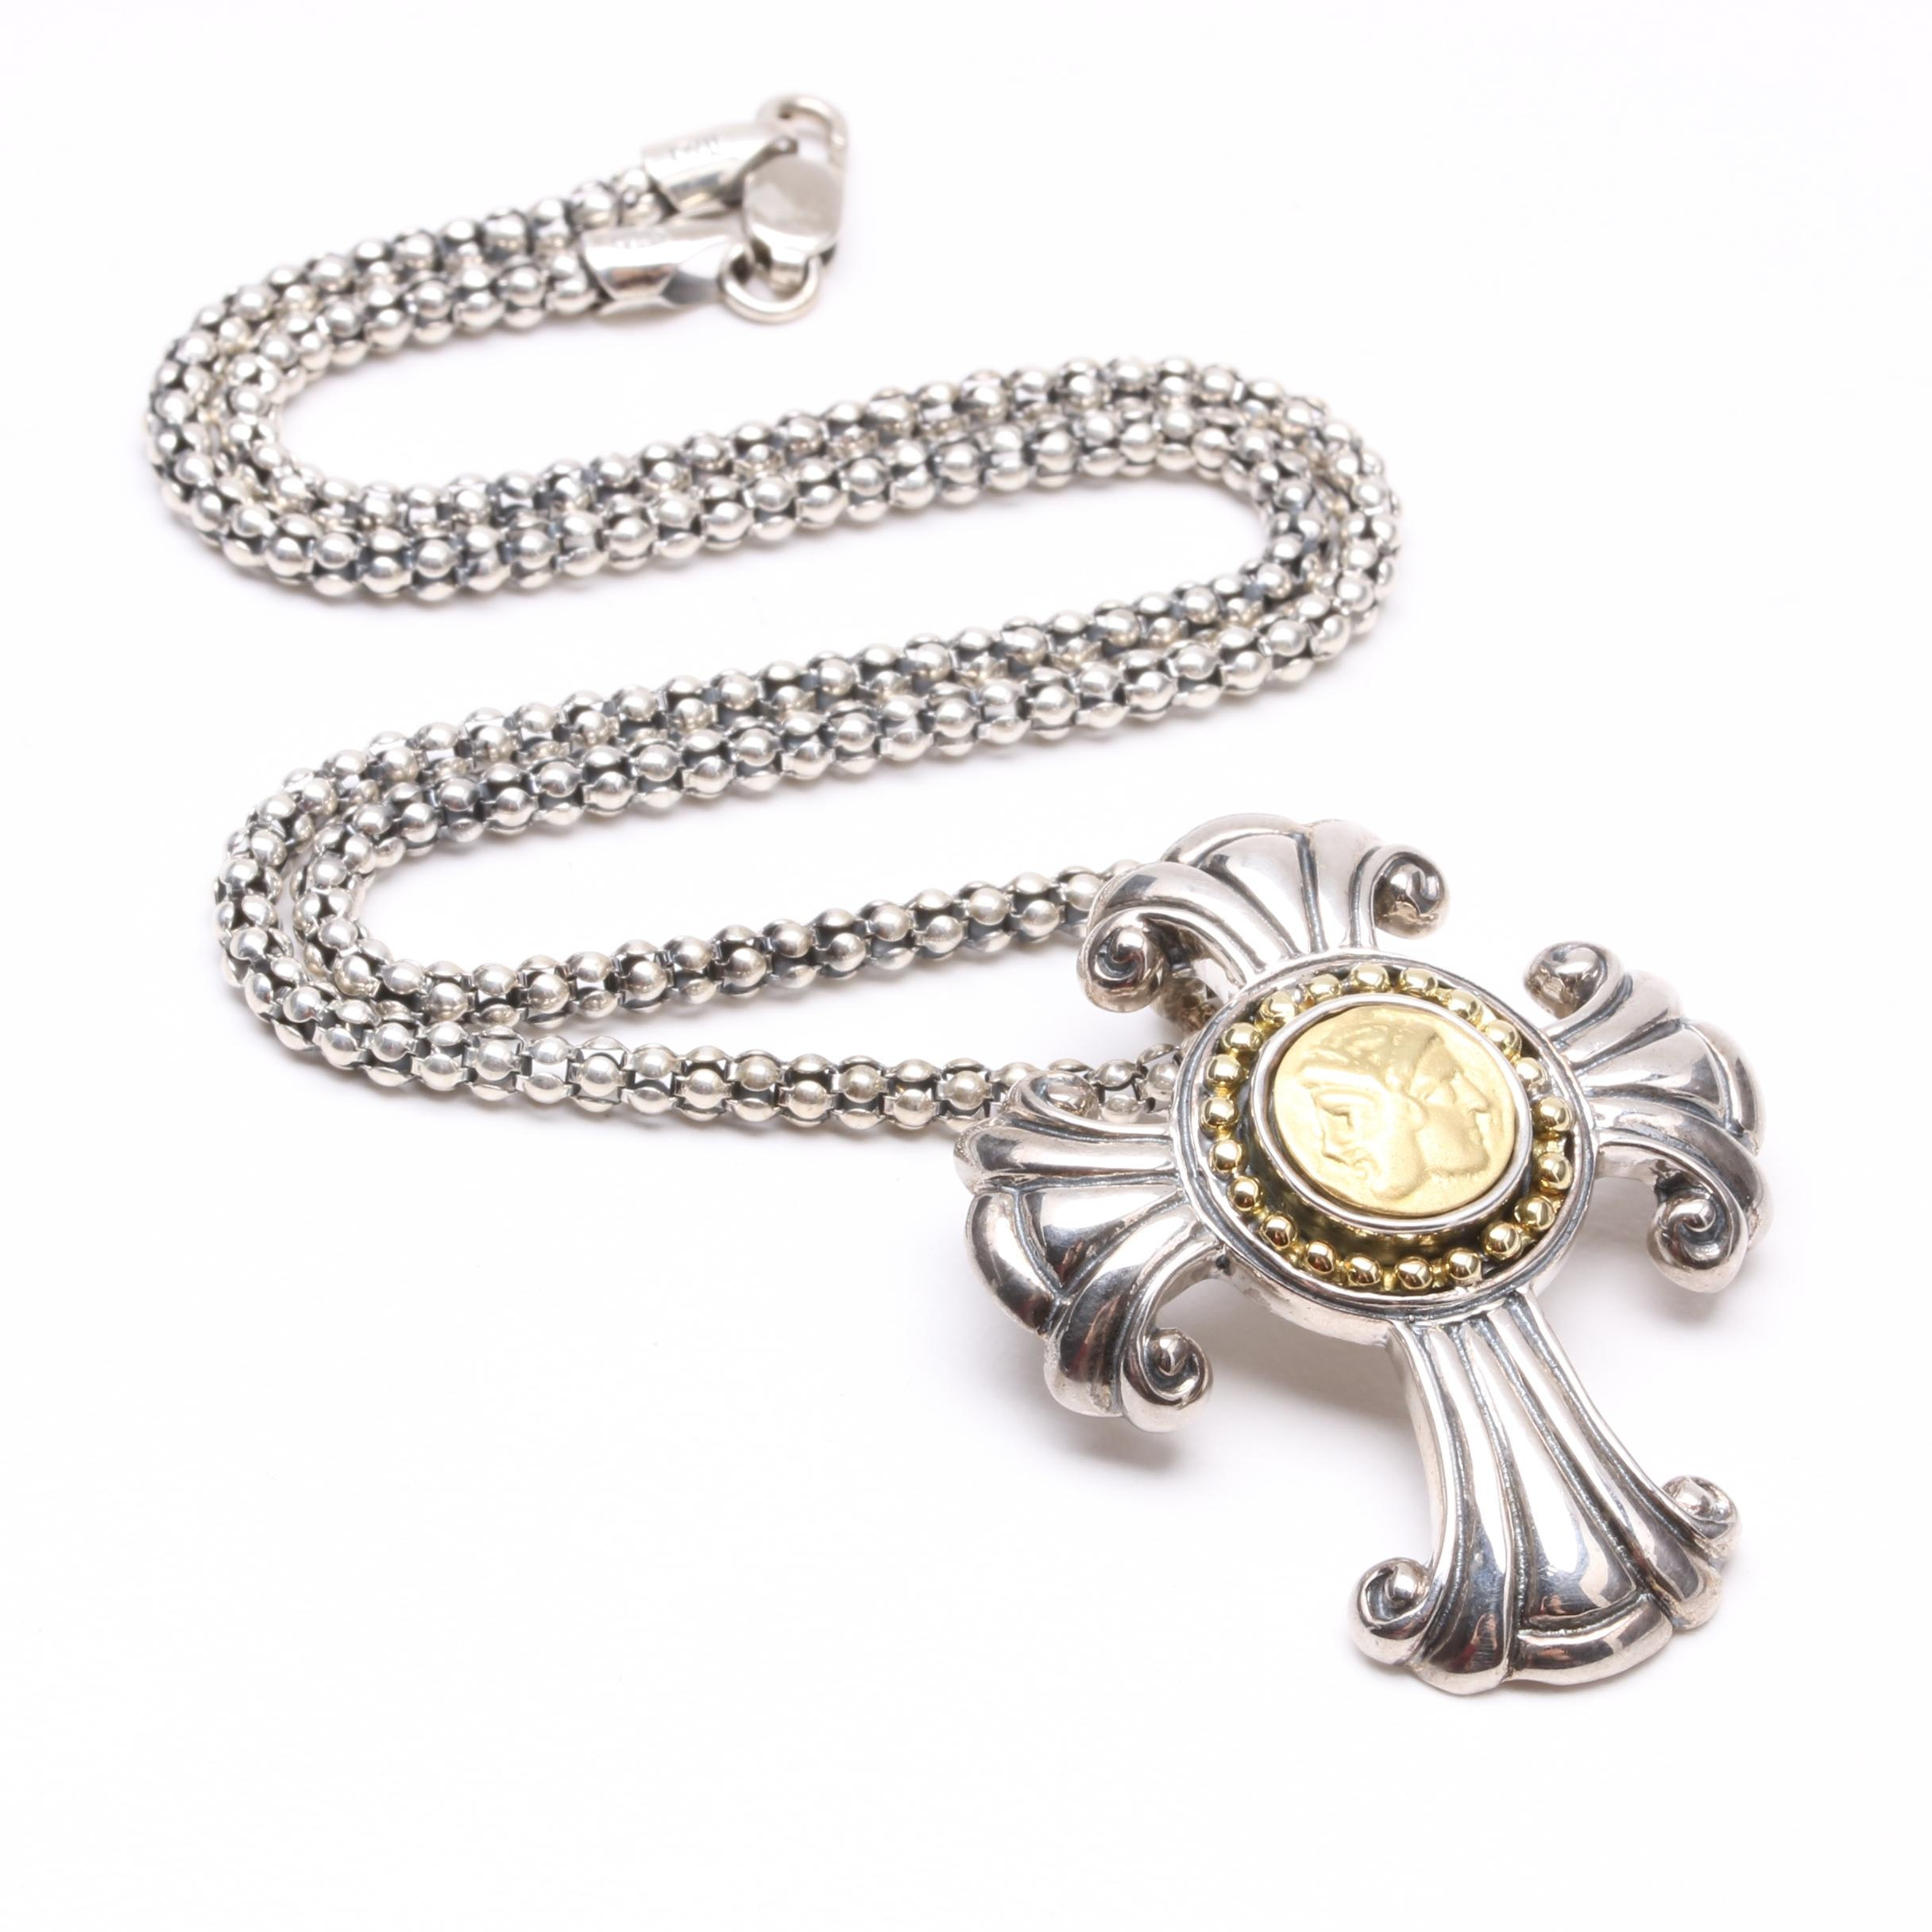 Sterling Silver with 18K Gold Accents Cross Enhancer Pendant Necklace